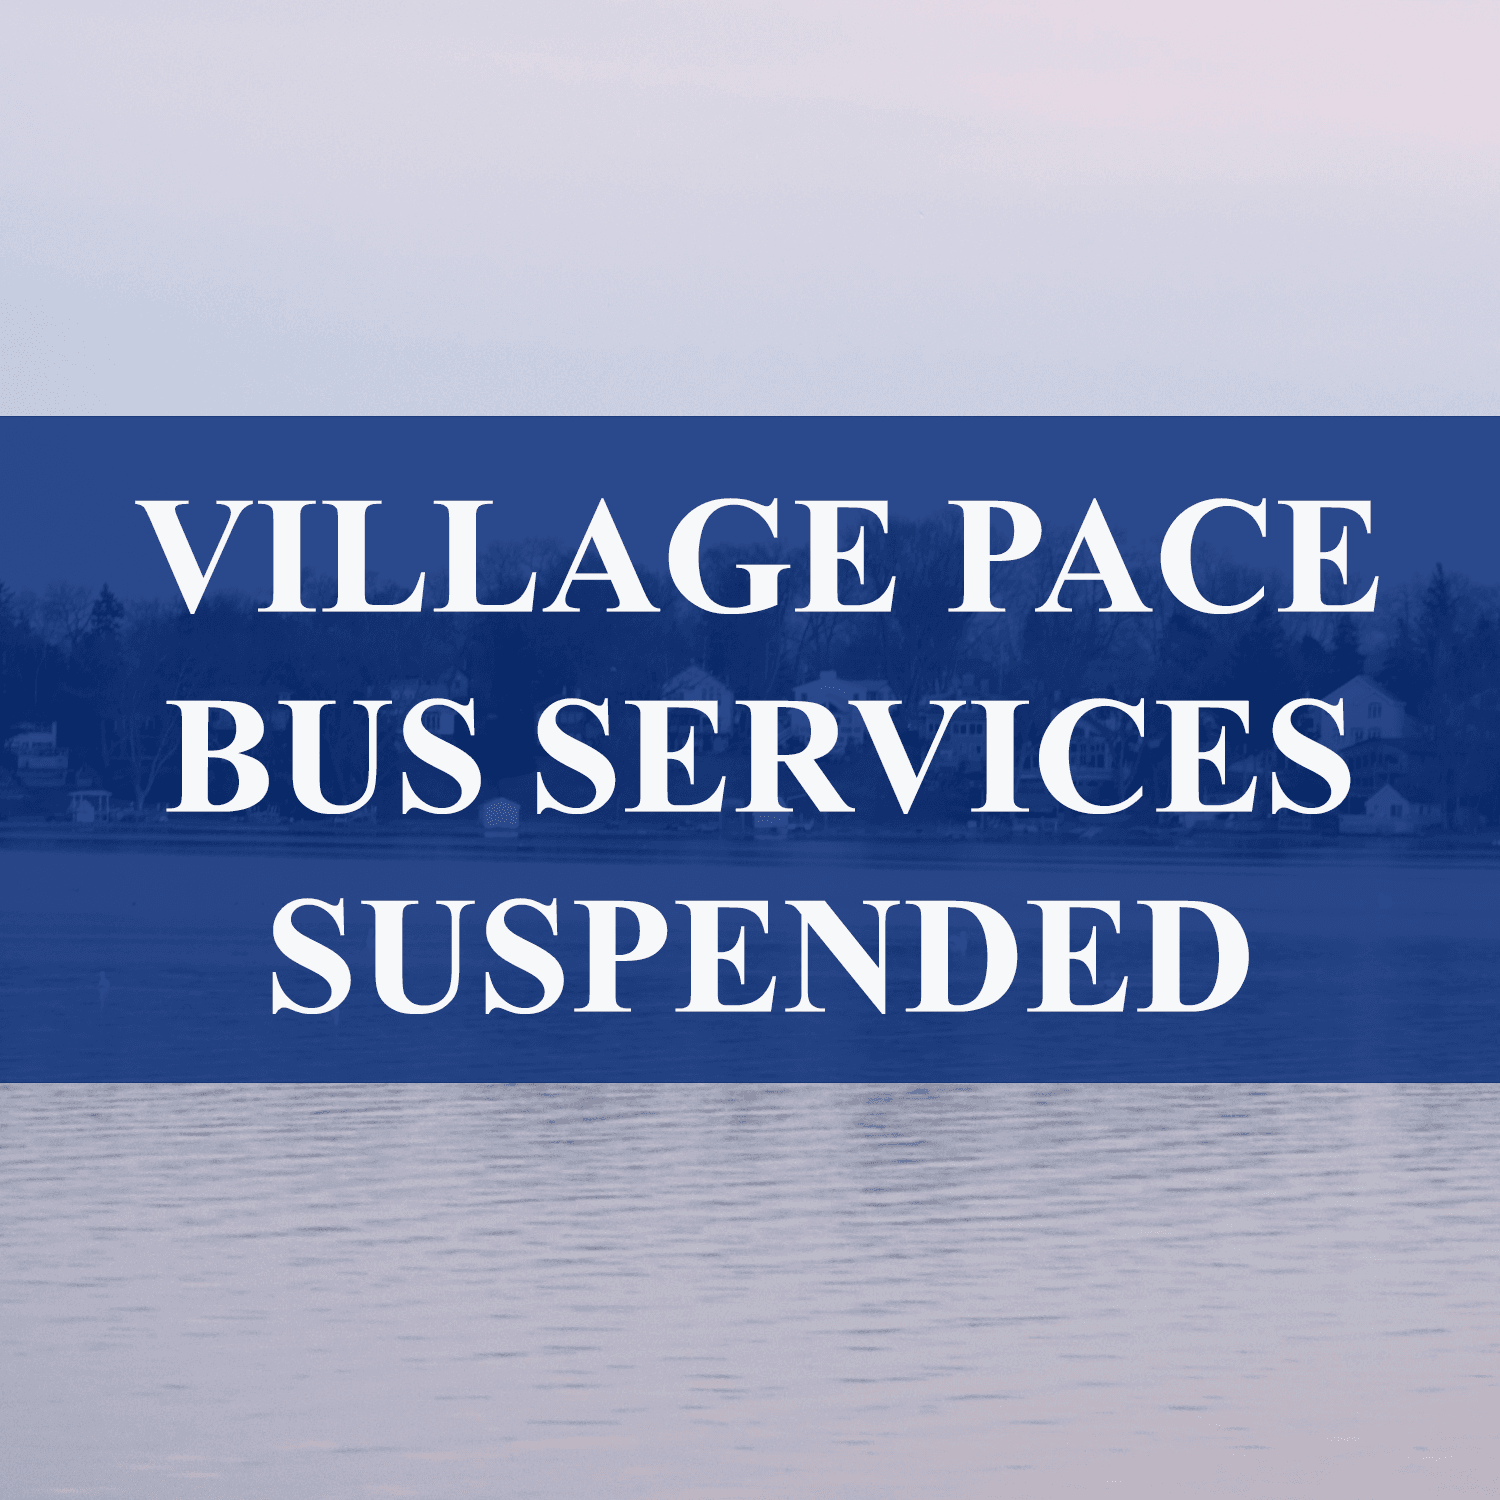 PACE BUS SERVICES SUSPENDED